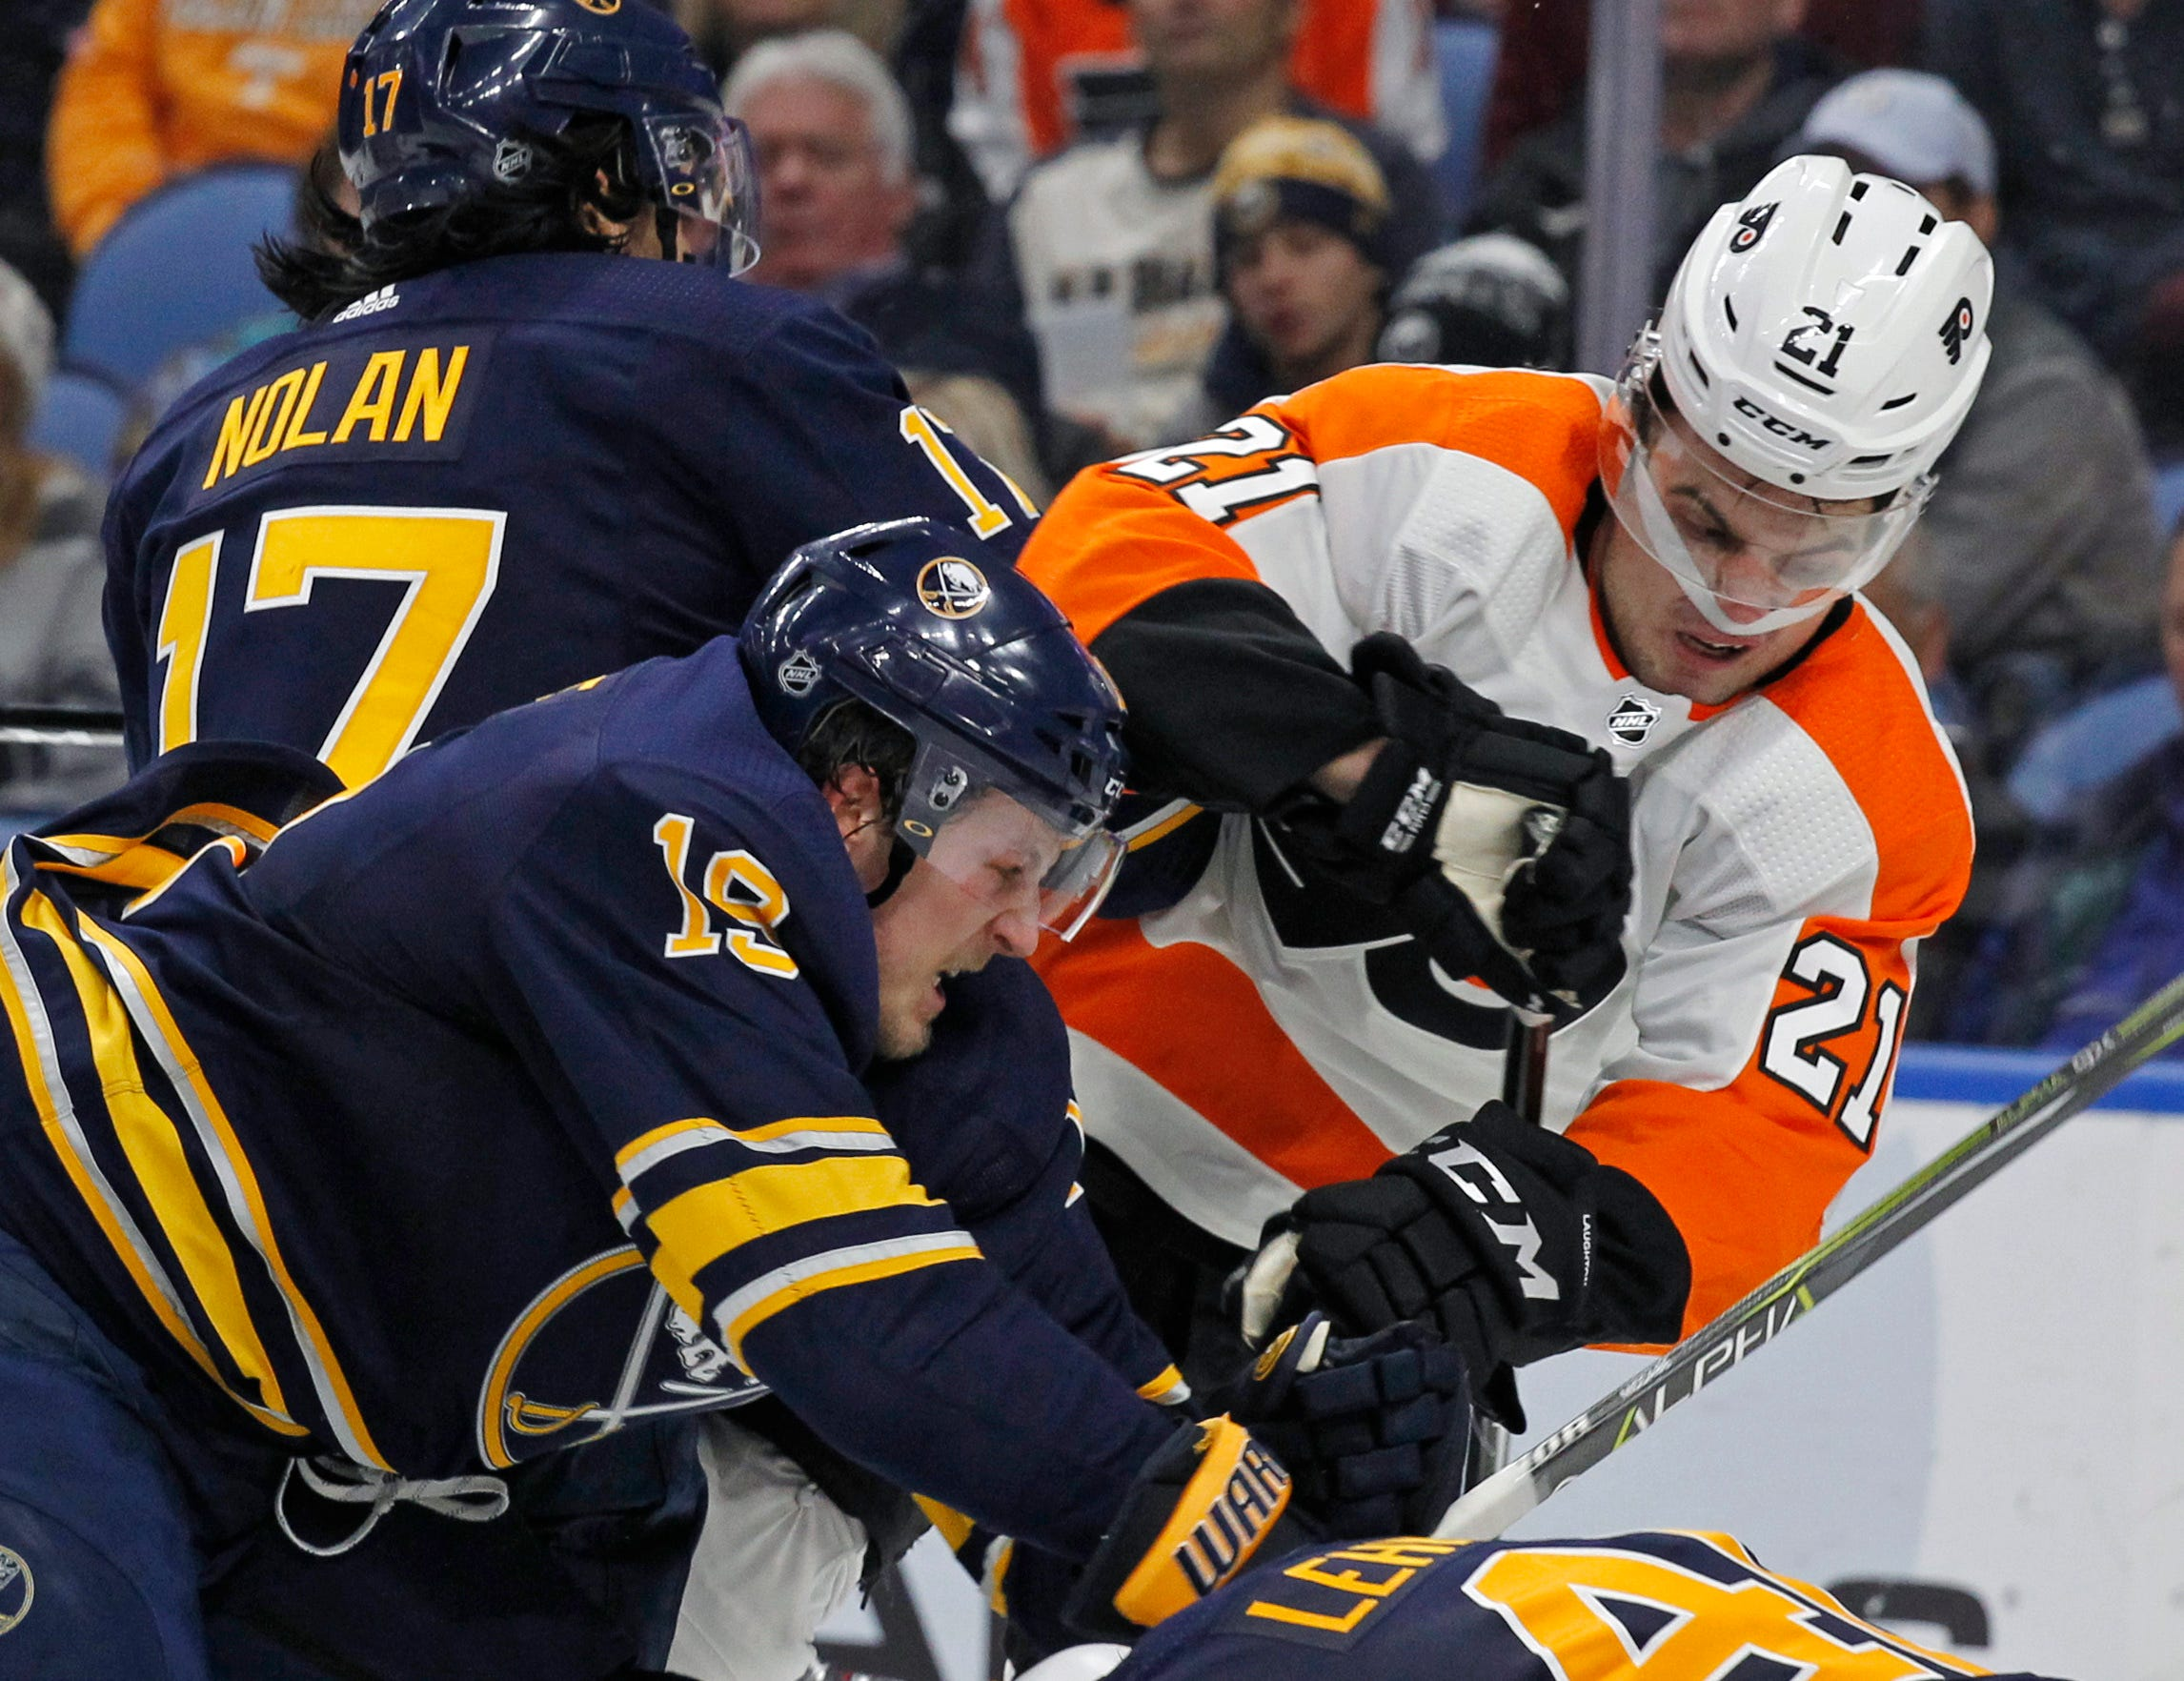 Kane has goal, assist in Sabres' 4-2 win over Flyers